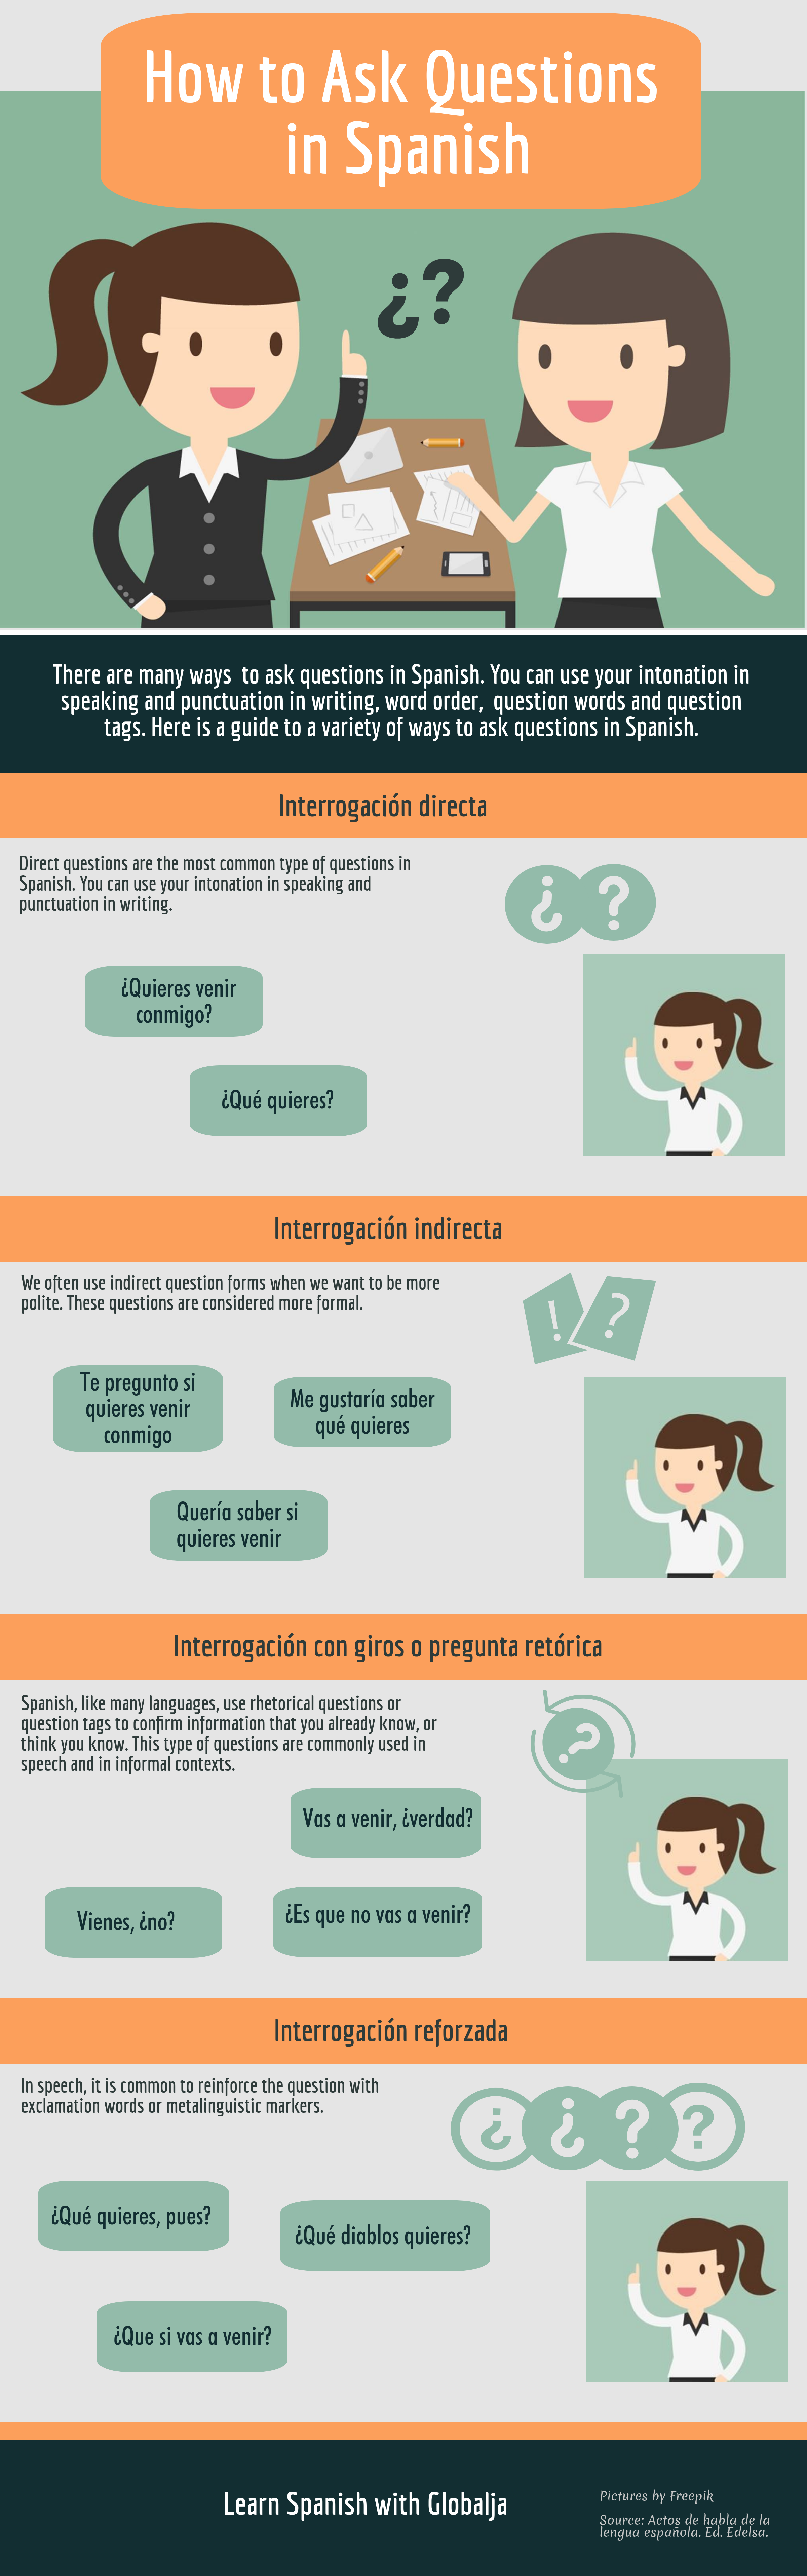 How-to-ask-questions-in-Spanish_Globalja